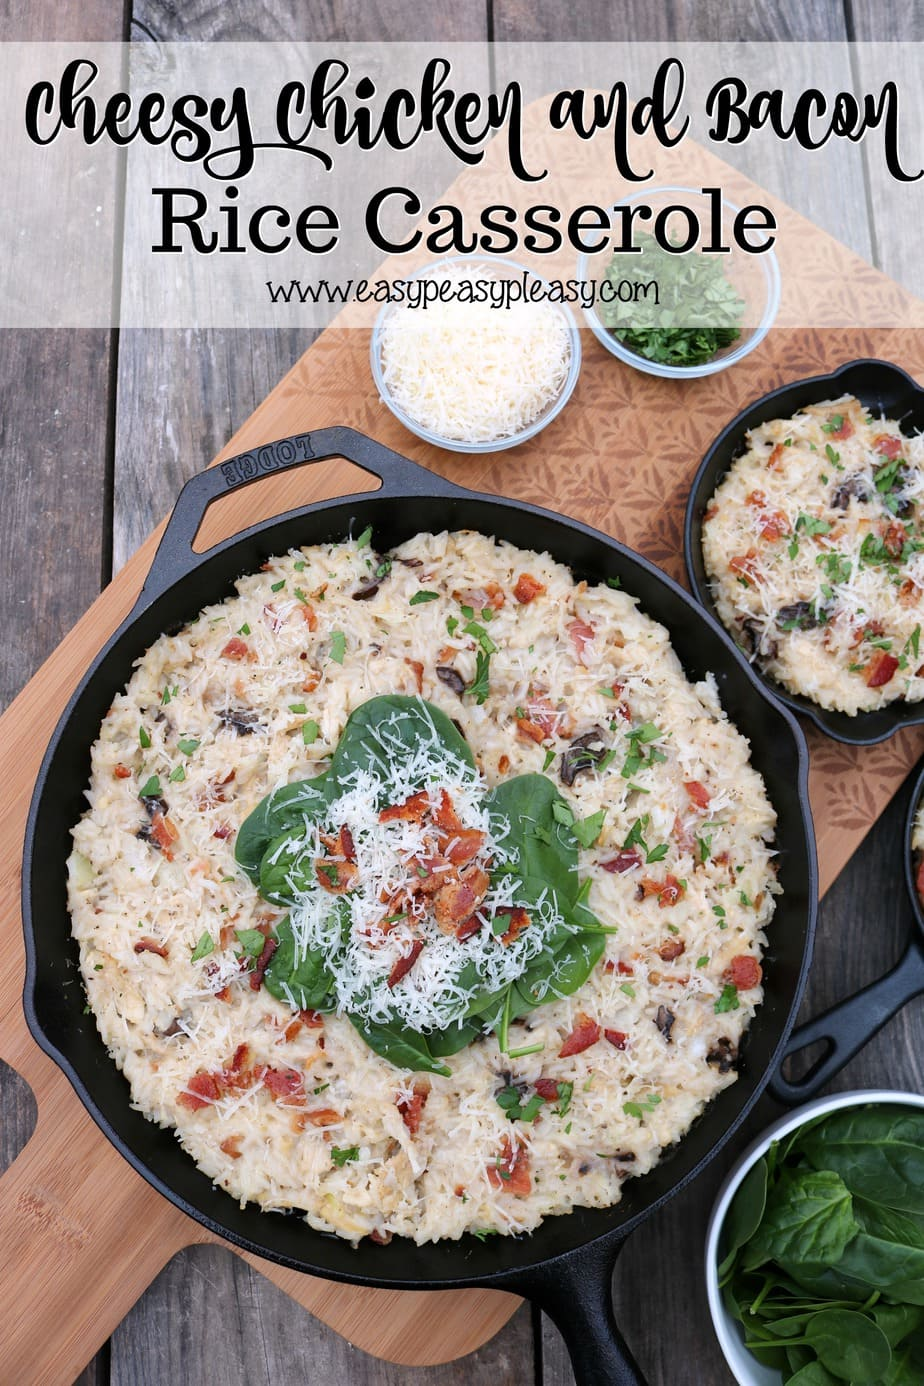 Grab this delicious Cheesy Chicken and Bacon Rice Casserole recipe at easypeasypleasy.com